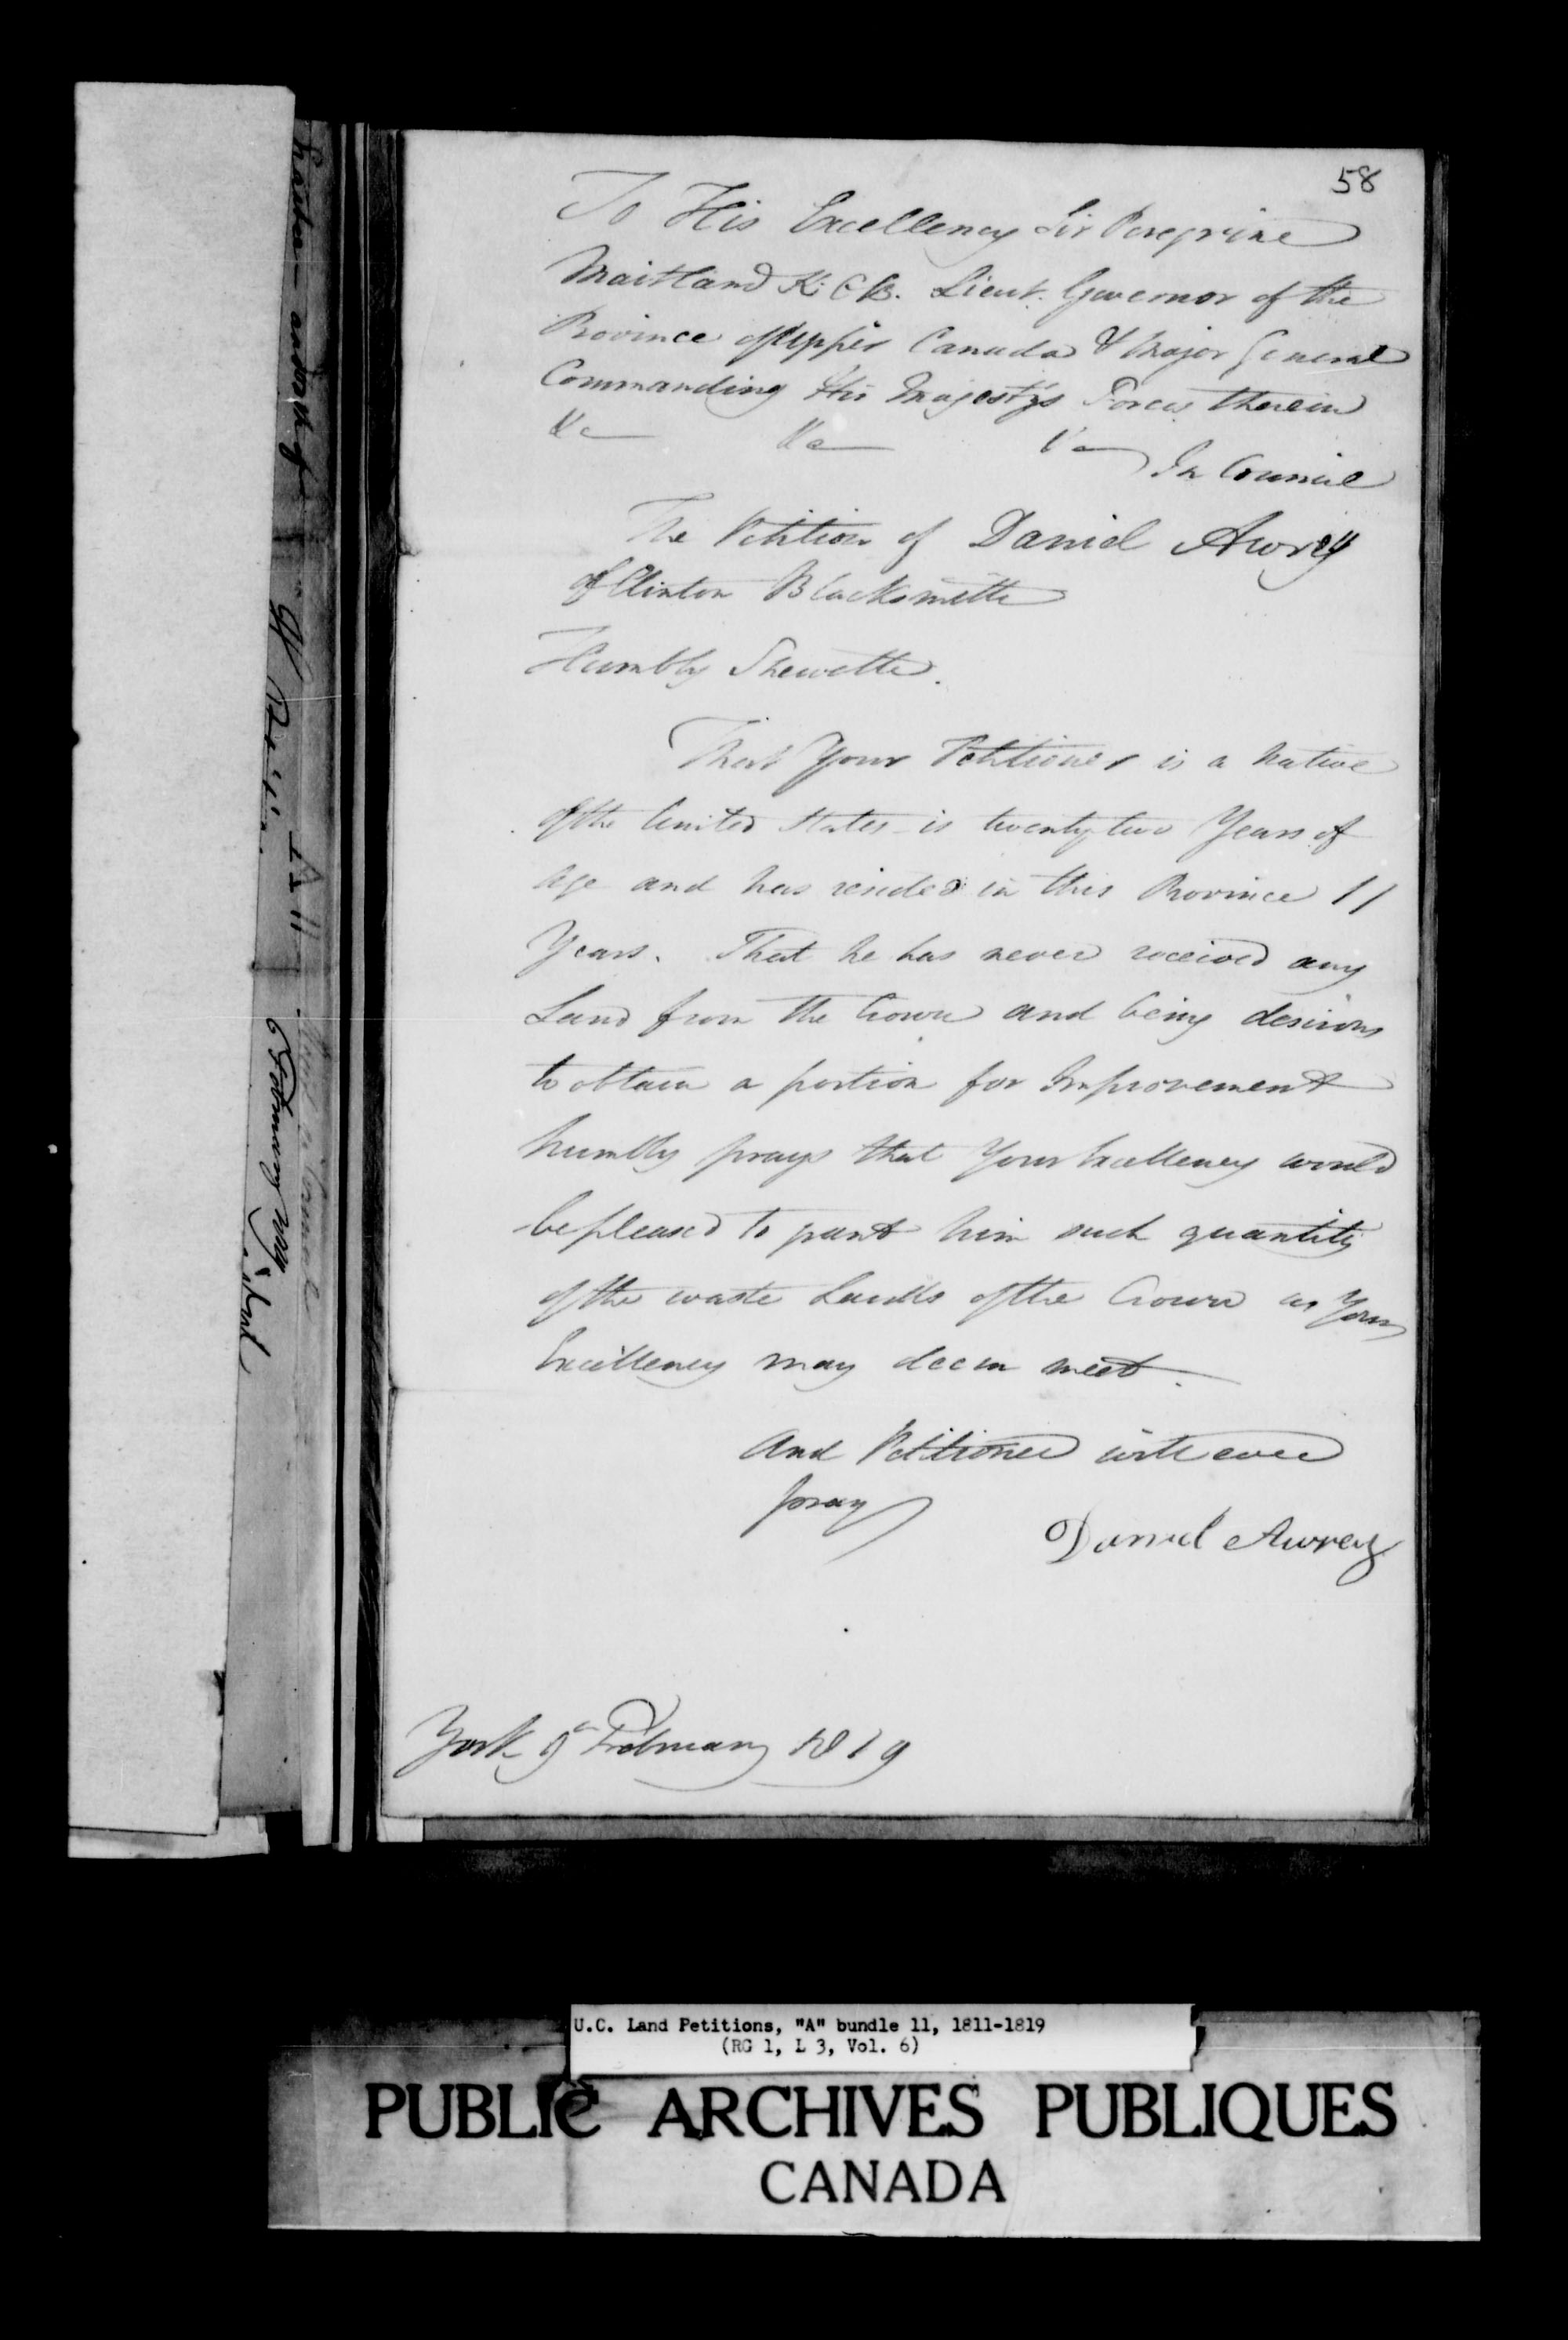 Title: Upper Canada Land Petitions (1763-1865) - Mikan Number: 205131 - Microform: c-1610